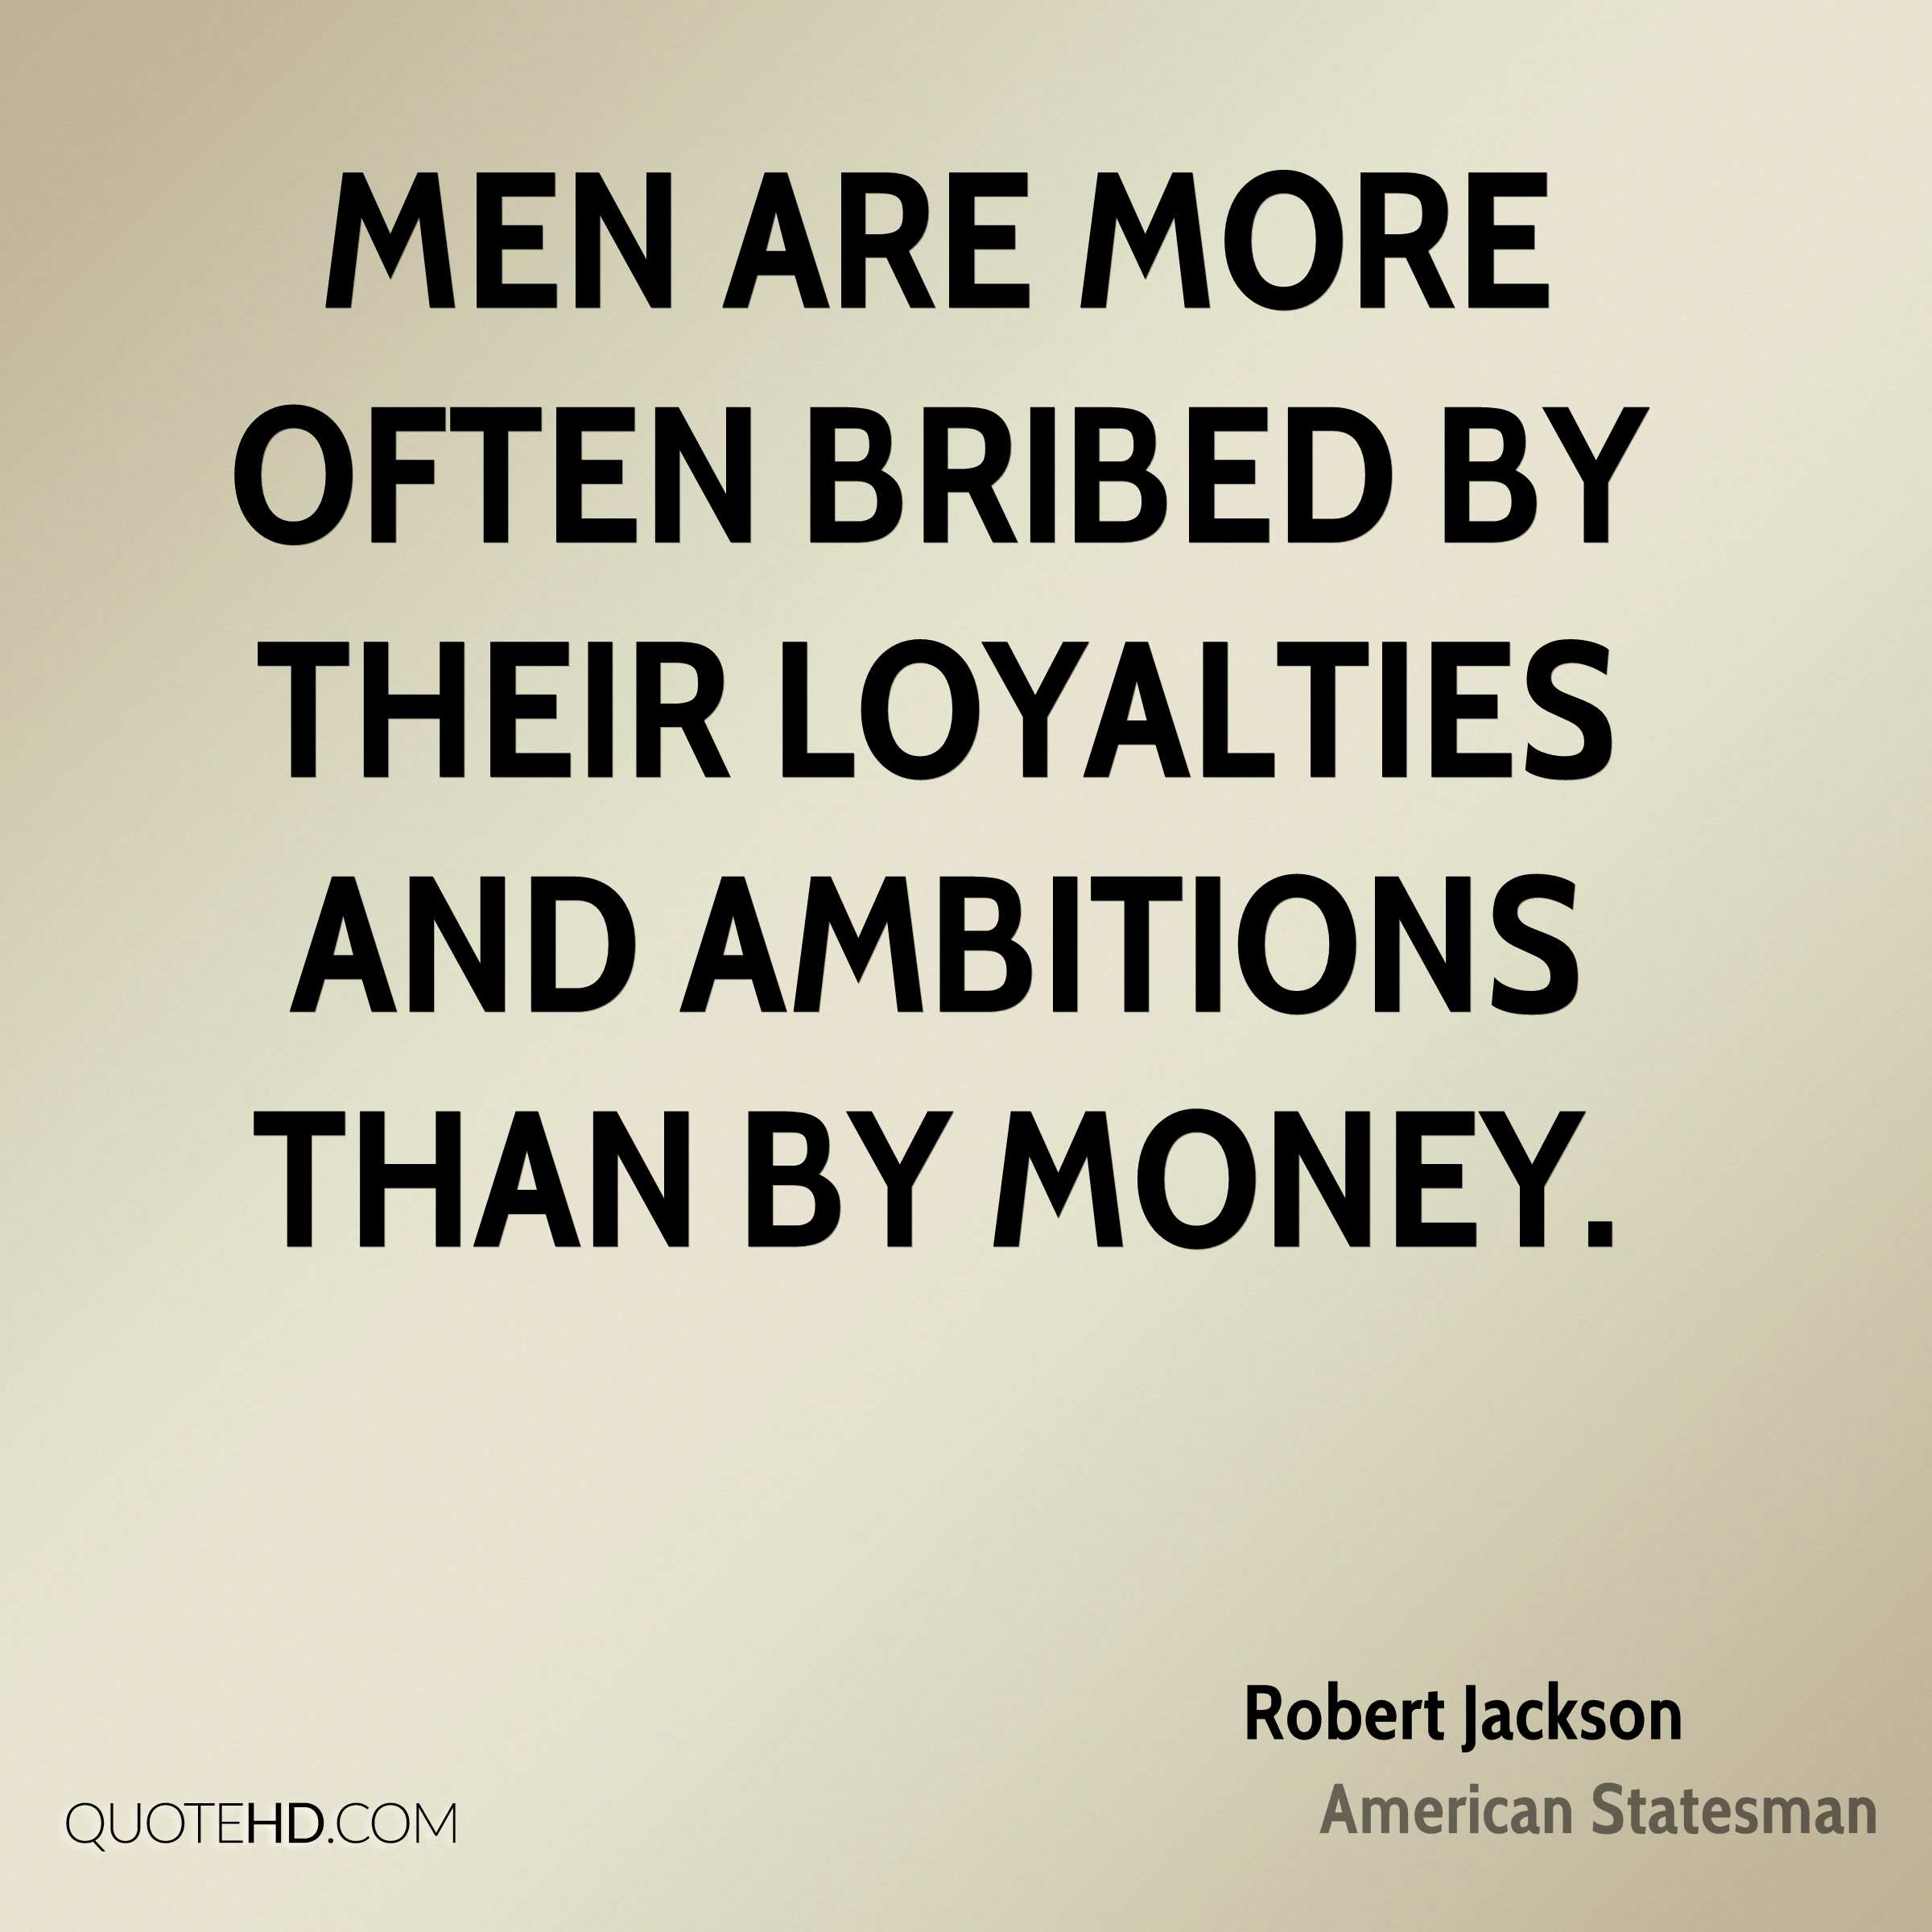 Men are more often bribed by their loyalties and ambitions than by money.